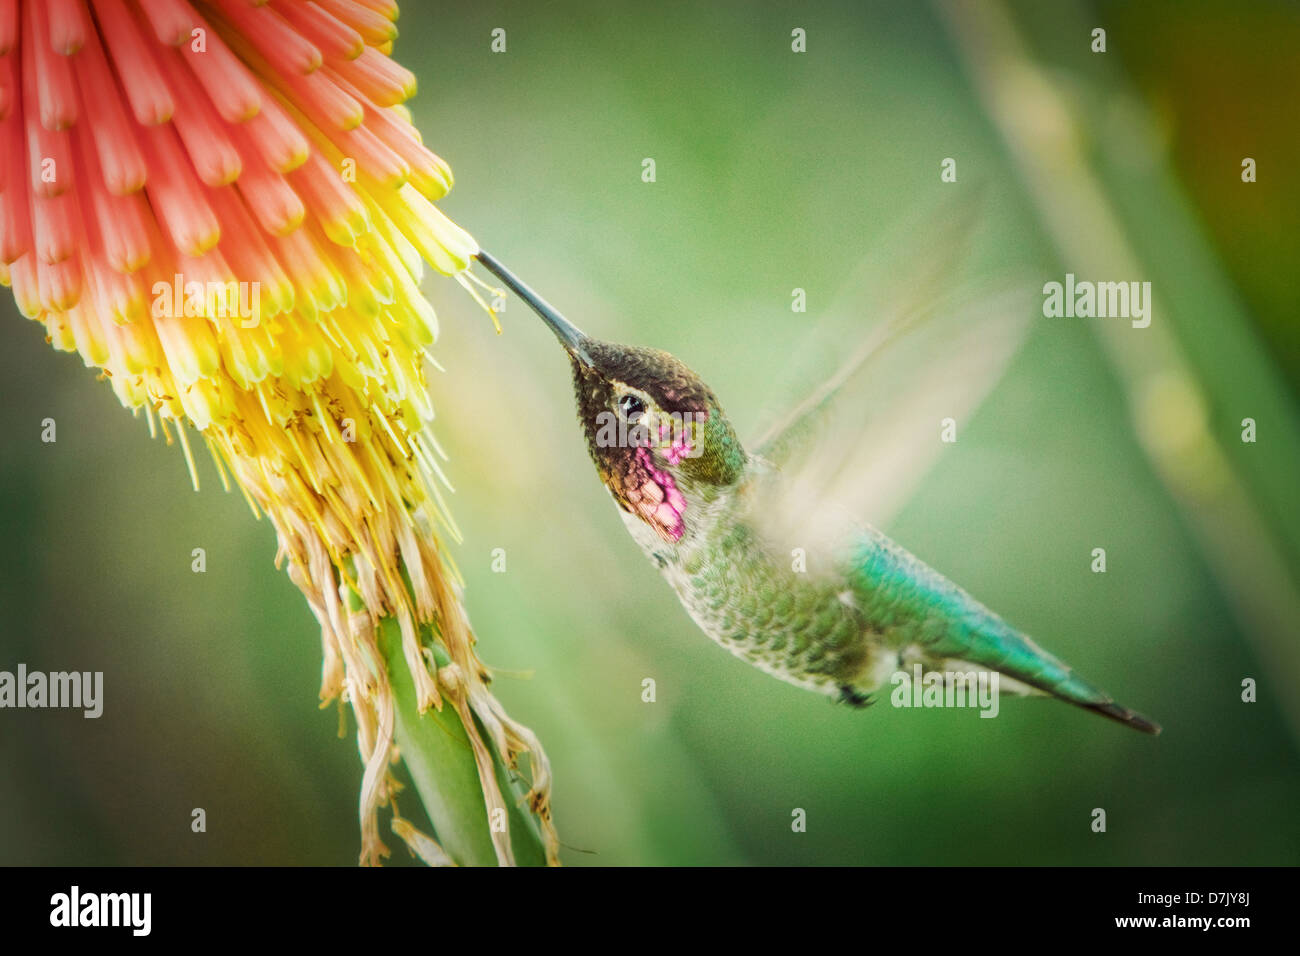 green pink hummingbird feeding on nectar from flower - Stock Image